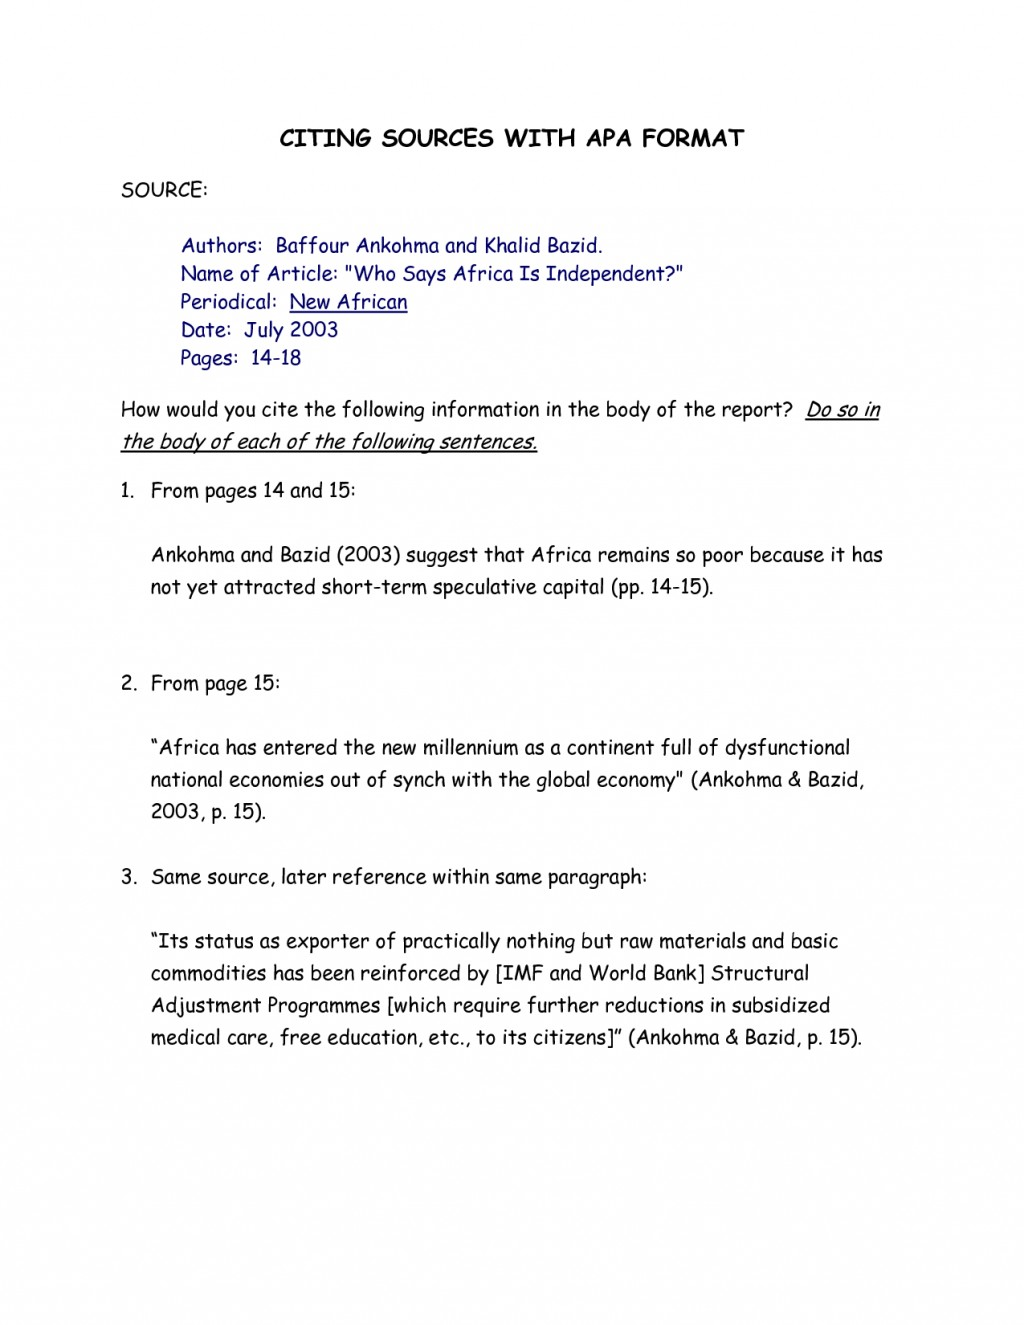 012 Citing Sources Apa Format Example 309734 Essay In Phenomenal An Argumentative Expository College Large